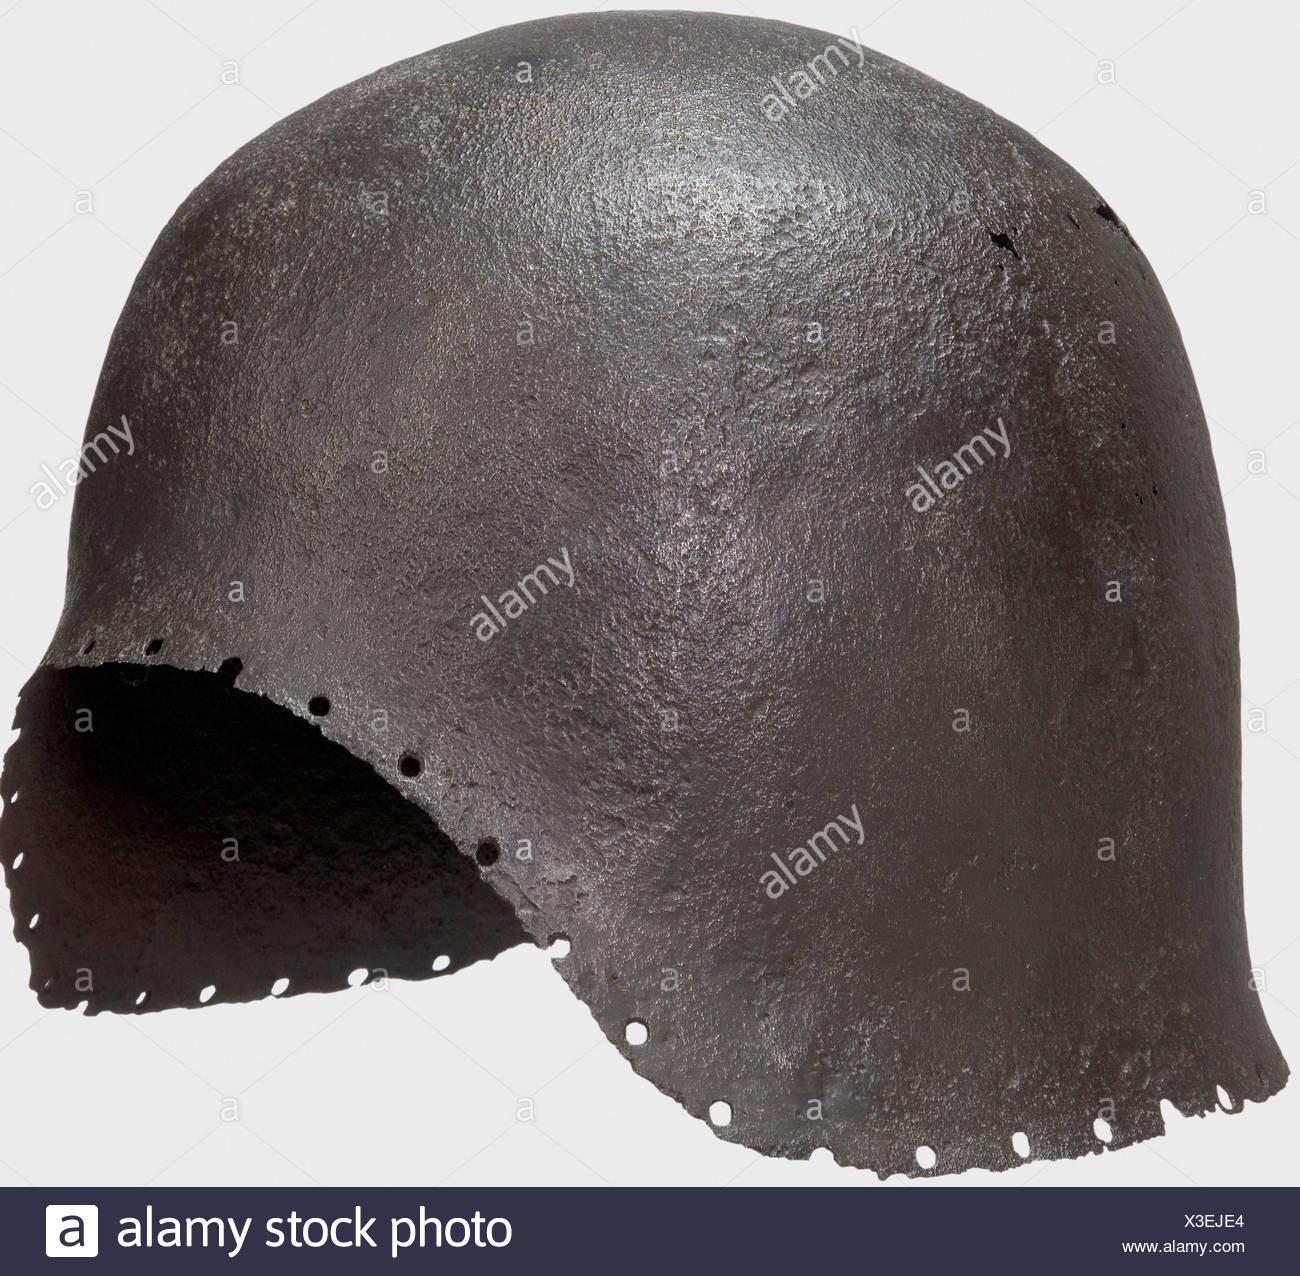 An Italian archer's sallet, Milan(?), middle of the 15th century One-piece hammered skull with a semicircular face cutout and a slightly flared edge. The perimeter with holes for the lining. The armourer's mark struck on the interior of the neck-guard. Cleaned excavation find, the skull with scattered corrosion holes. Height 19.5 cm. A simply fashioned enlisted man's helmet, whose markings can presumably be associated with a Milanese armourer. An early barbute with nearly identical mark is in the collection of Royal Armouries. See Karcheski, Walter J. 'The Medi, Additional-Rights-Clearances-NA - Stock Image